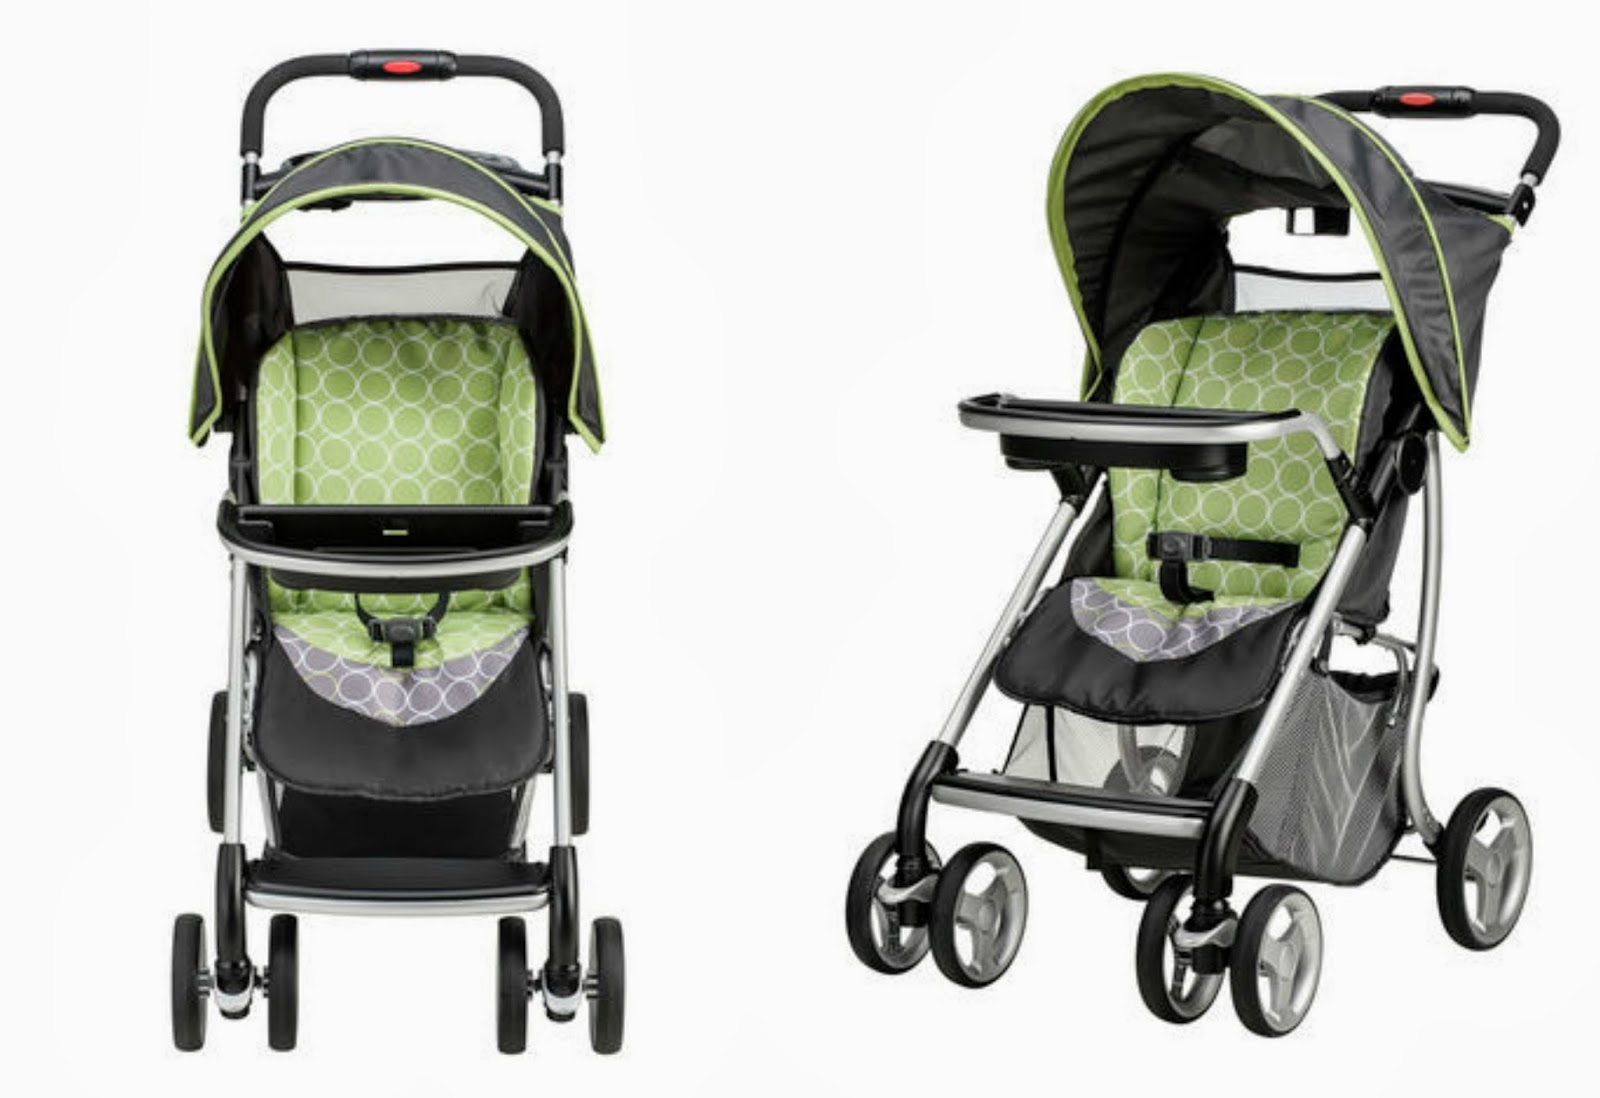 finding a stroller  carseat for your little bundle with evenflo  - a look at the evenflo journeylite select stroller